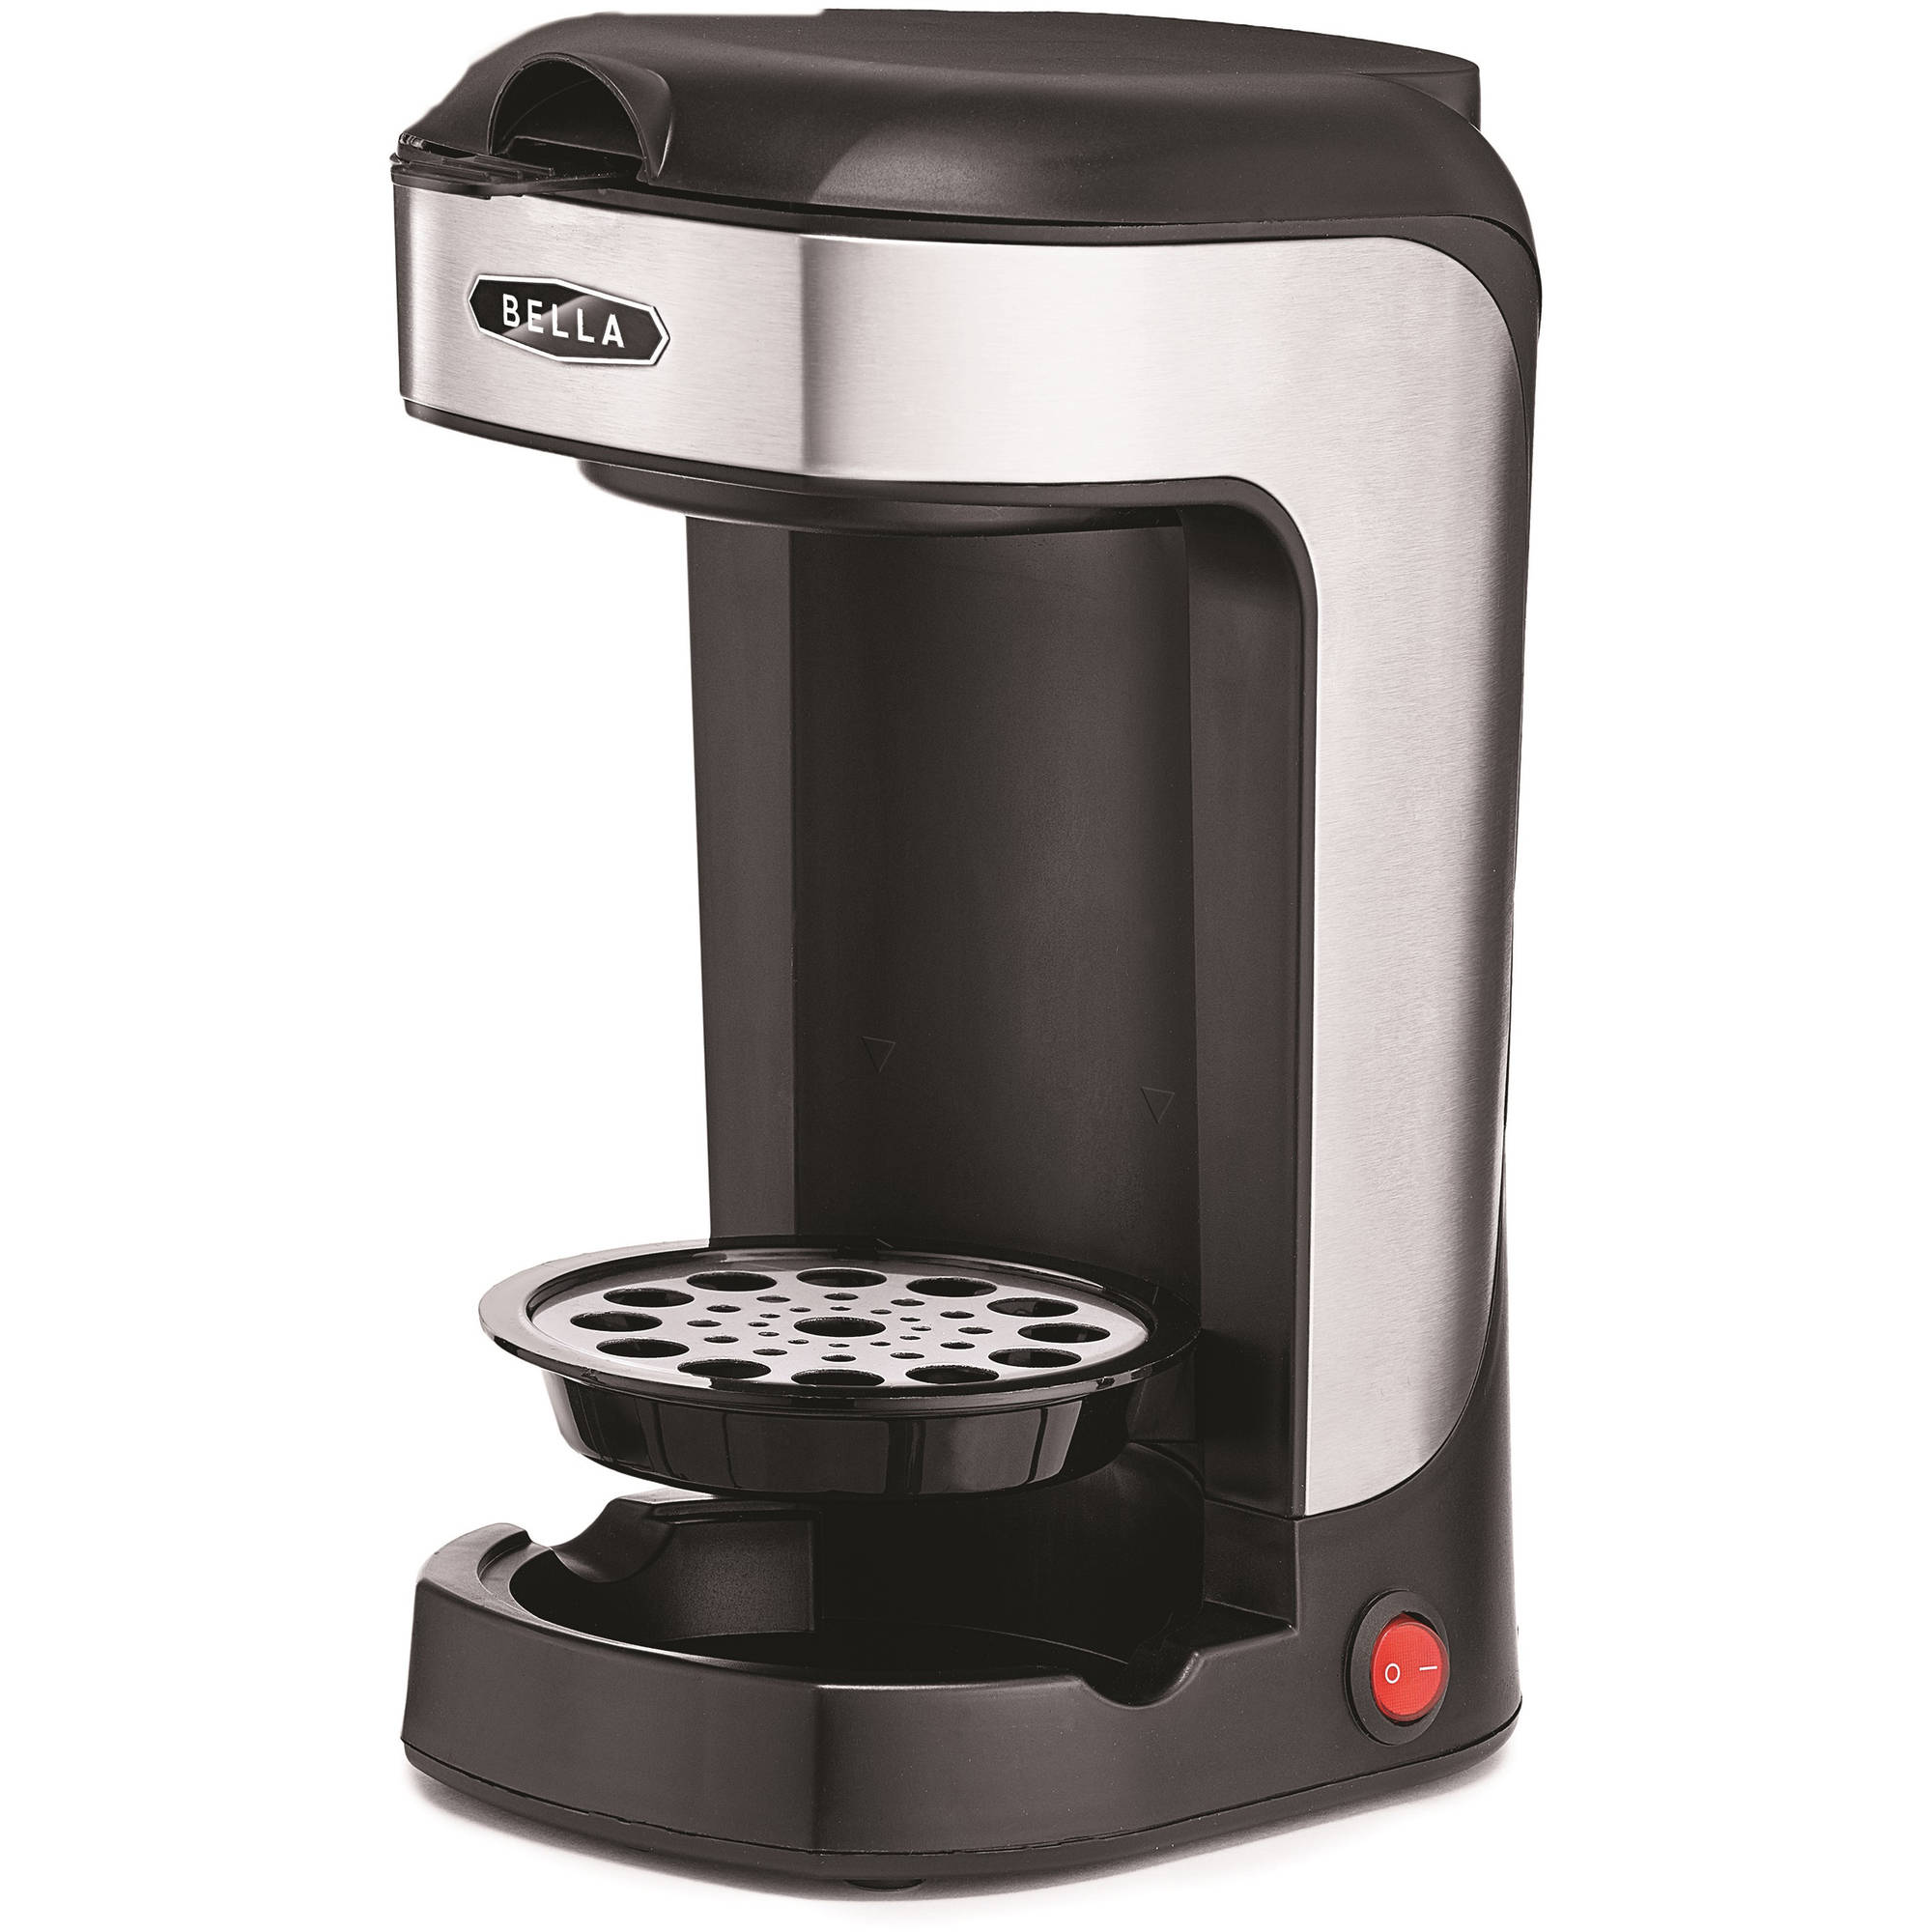 BELLA Single Scoop Coffee Maker, Black by Sensio